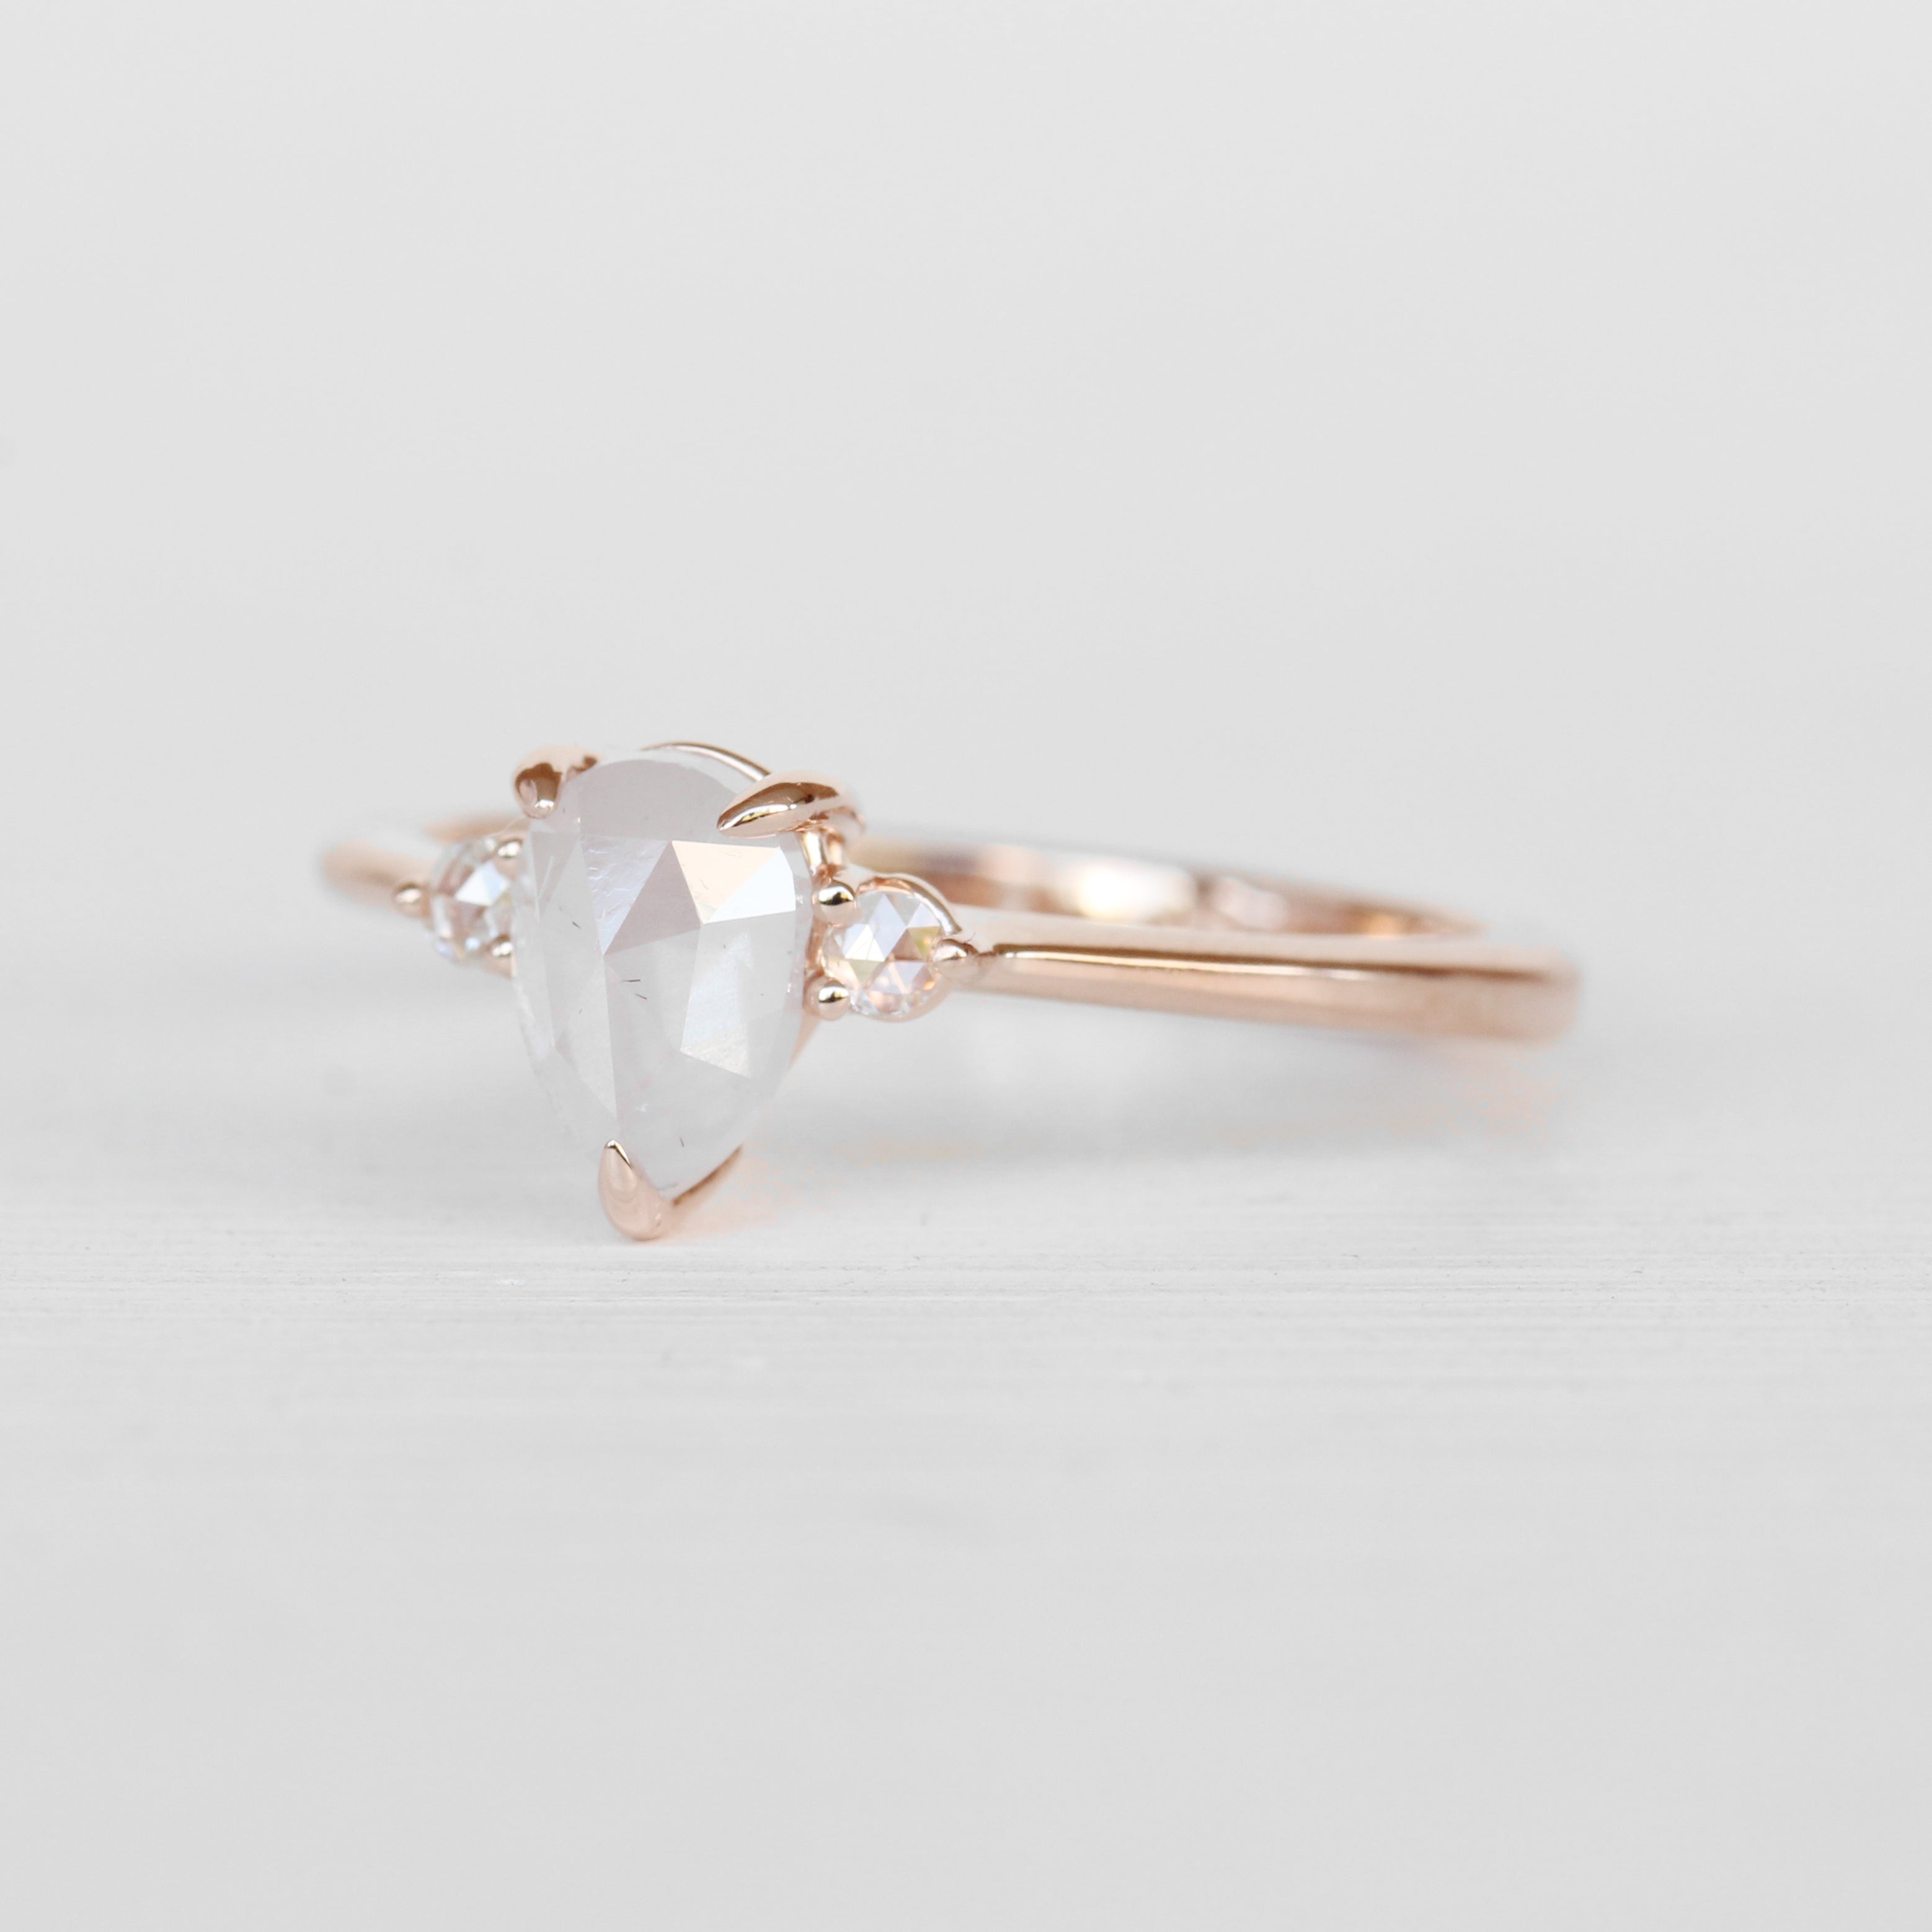 Drea Ring with a .91 ct Misty White Diamond in 10k Rose Gold - Ready to Size and Ship - Celestial Diamonds ® by Midwinter Co.